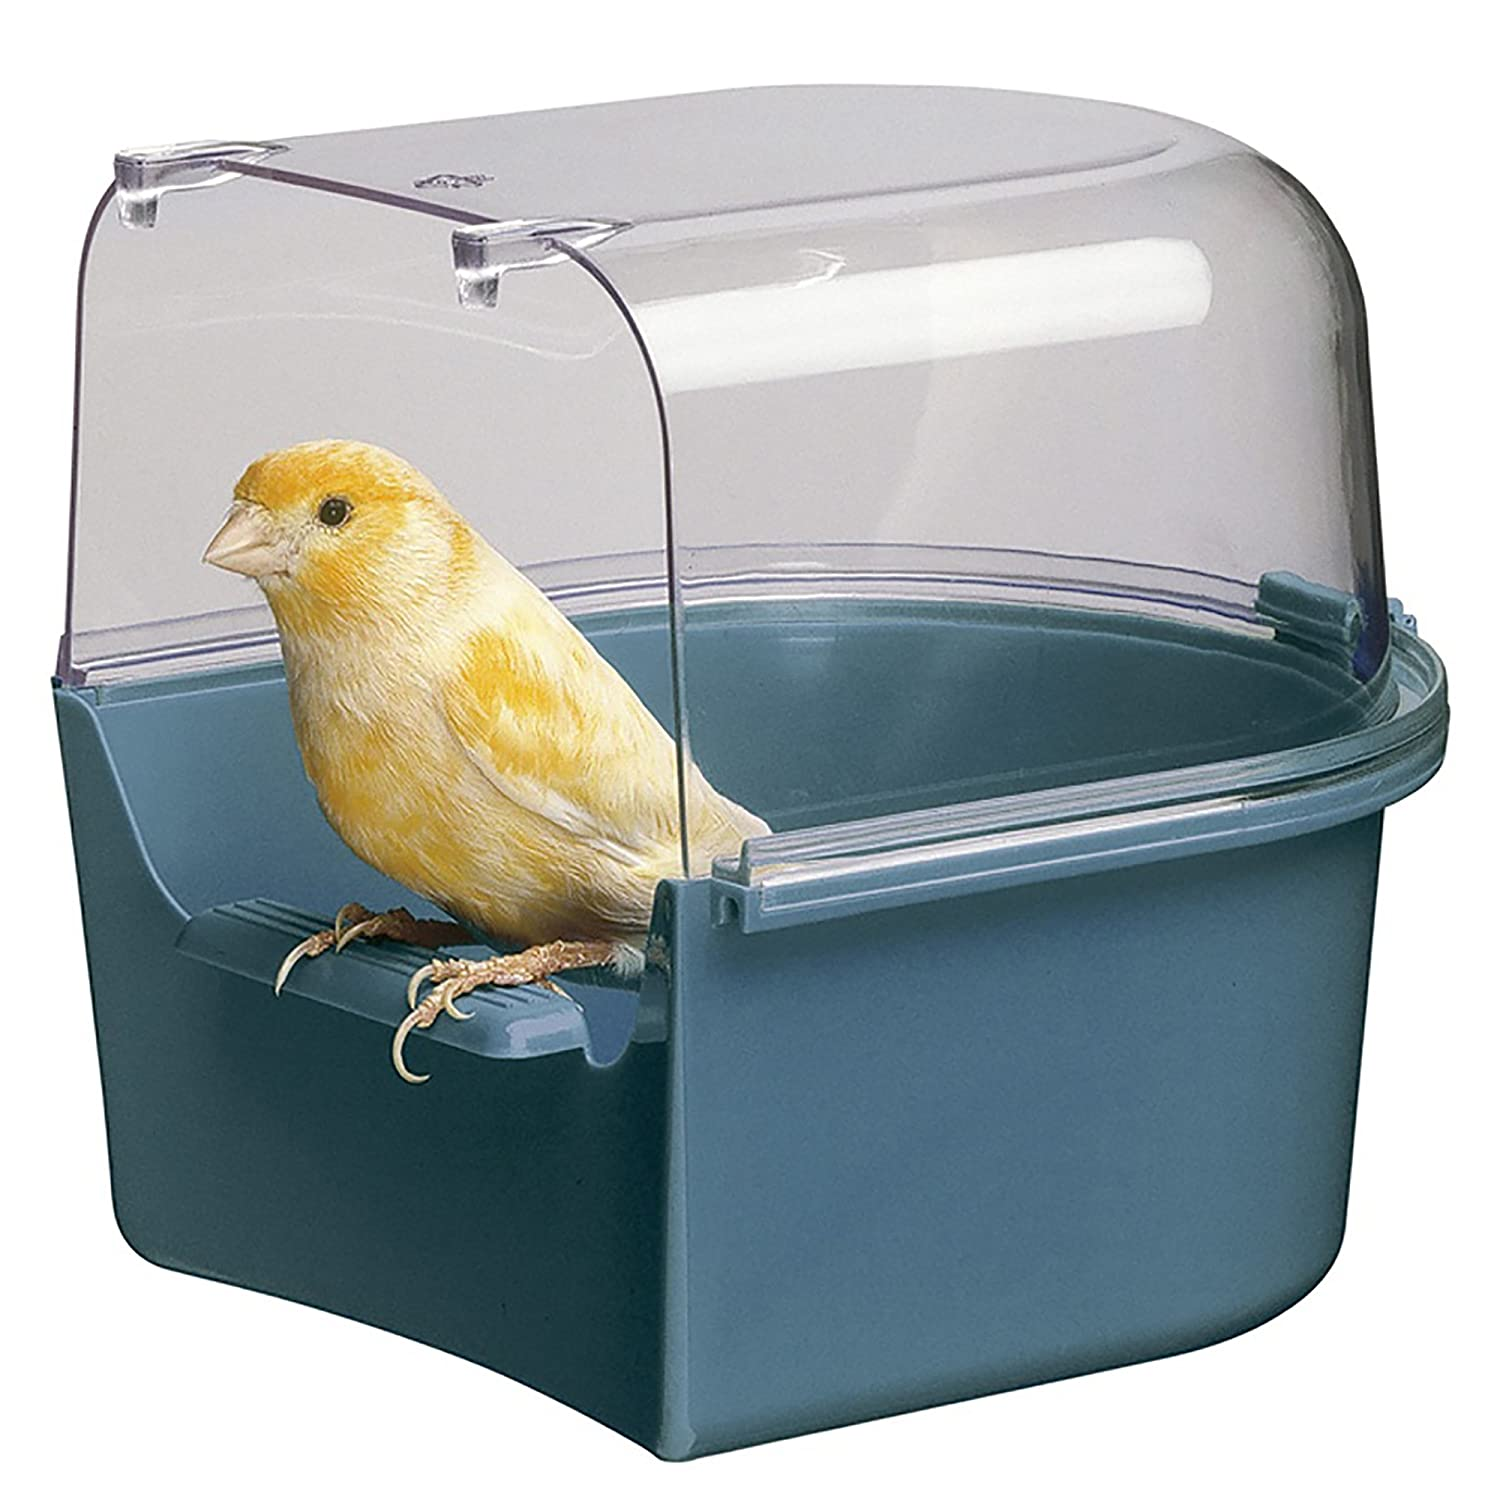 Ferplast Trevi Bird Bath Covered Canary 14x15x13cm B2_0175371 1213